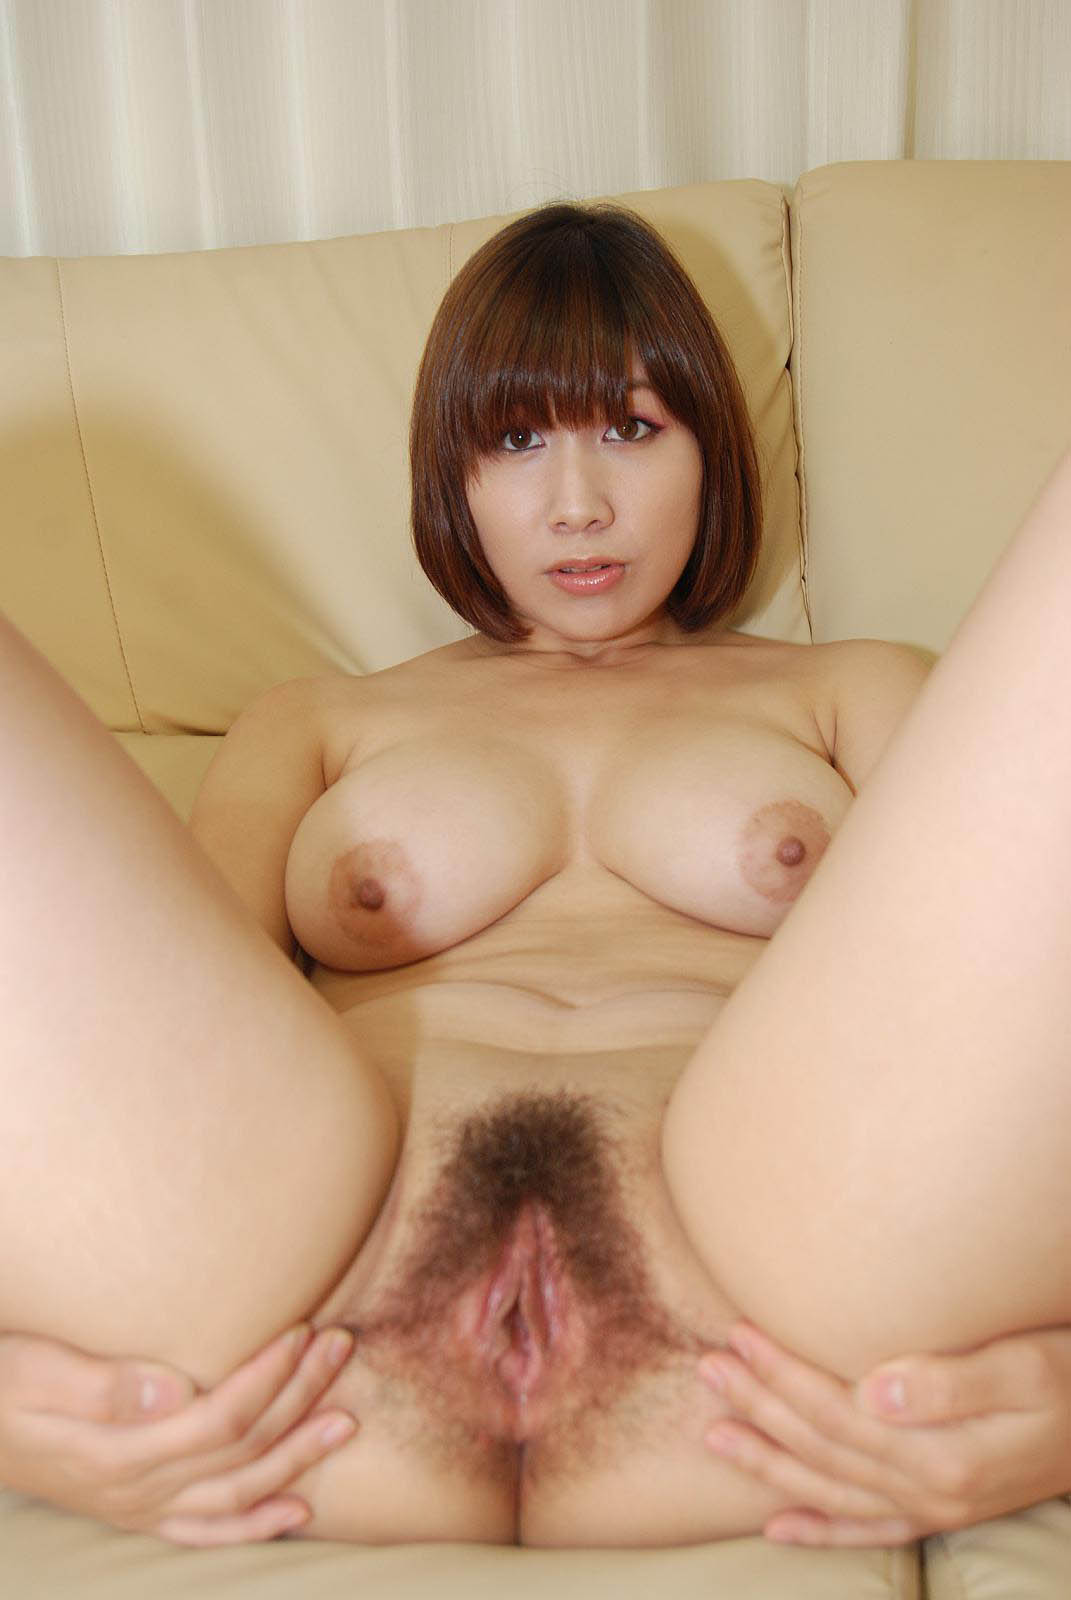 Busty asian in stockings shows her hairy pussy asian sexiest girlsasian sexiest girls